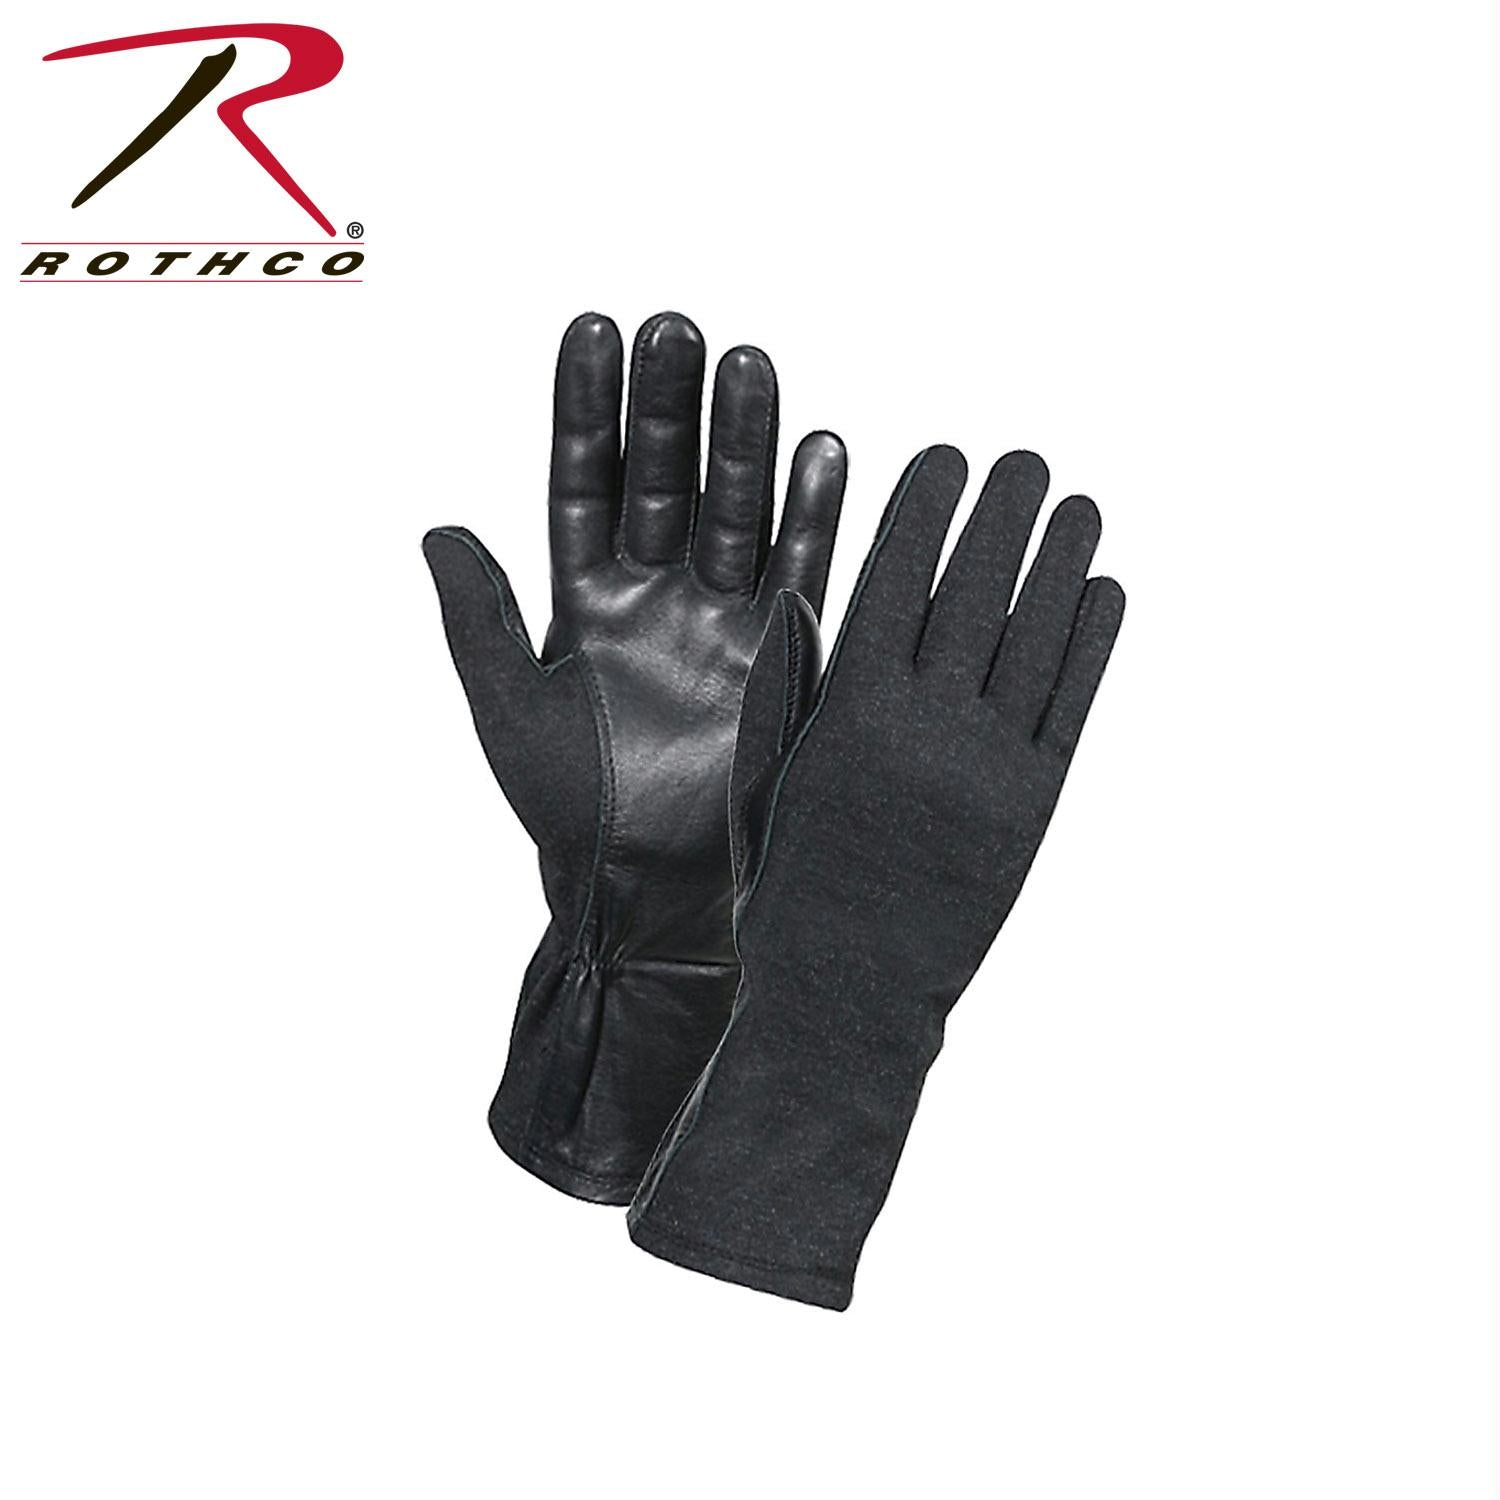 Rothco G.I. Type Flame & Heat Resistant Flight Gloves - Black / 8